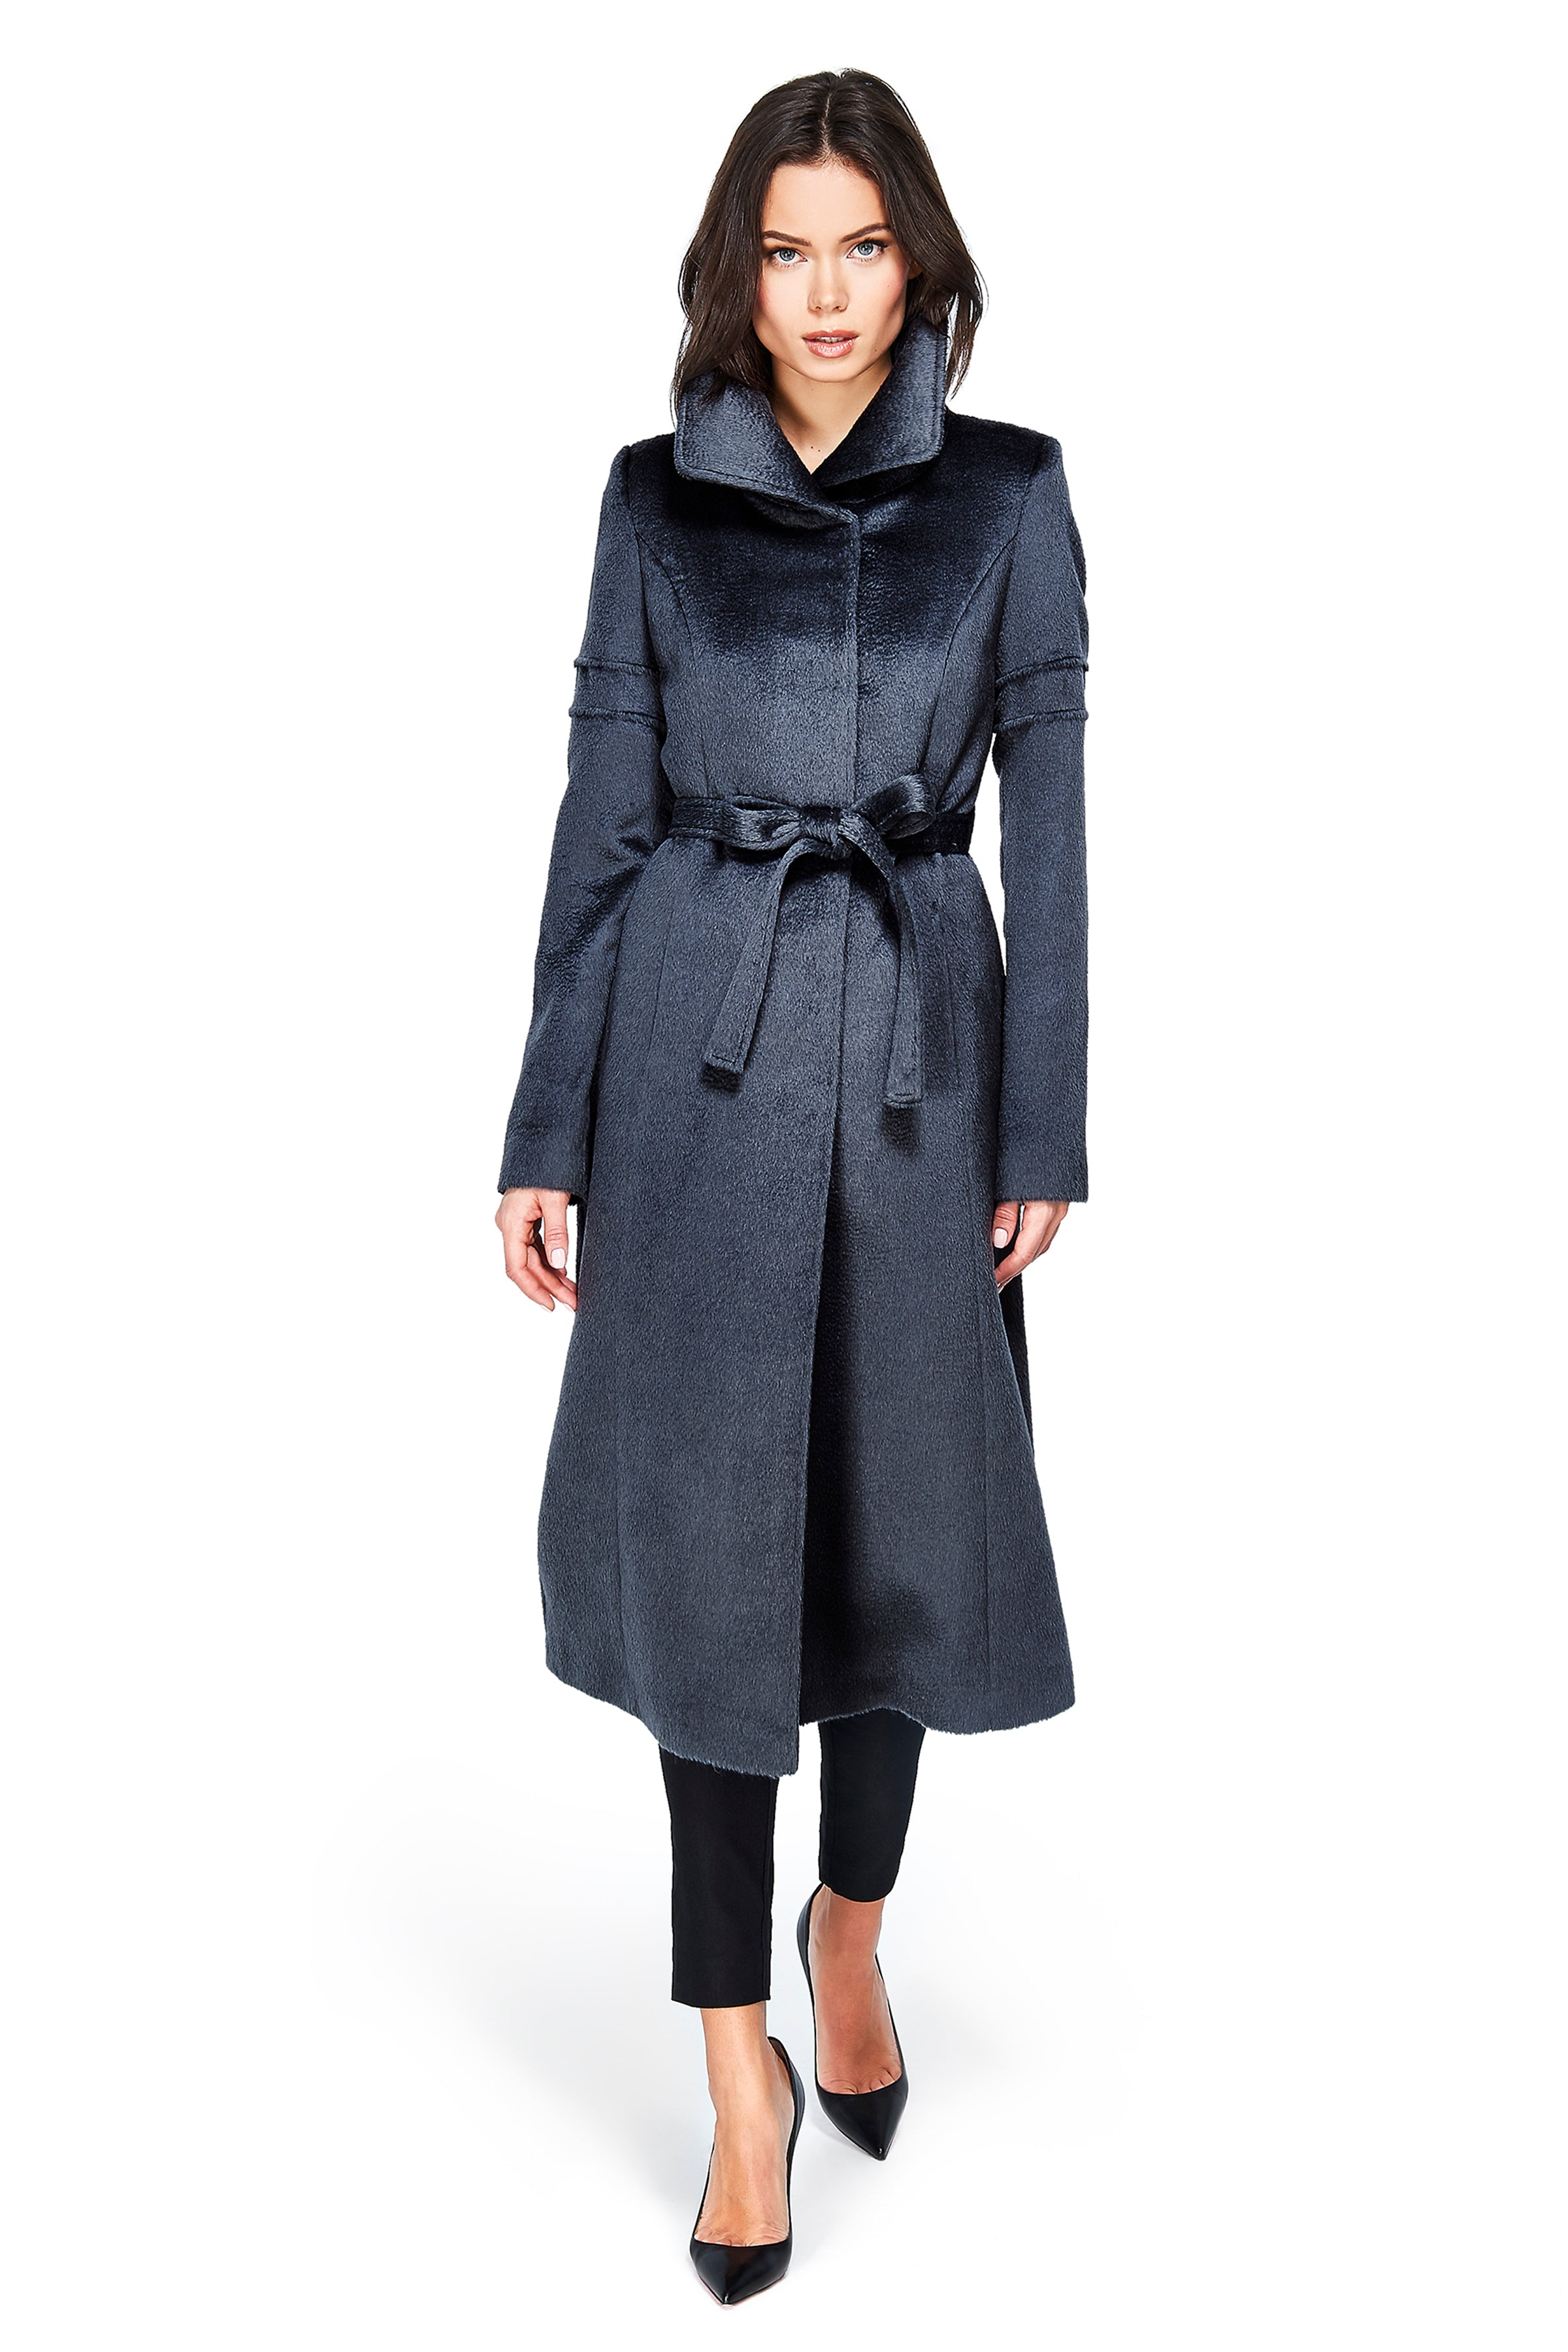 Long Fitted Coat with Tie Charcoal Grey